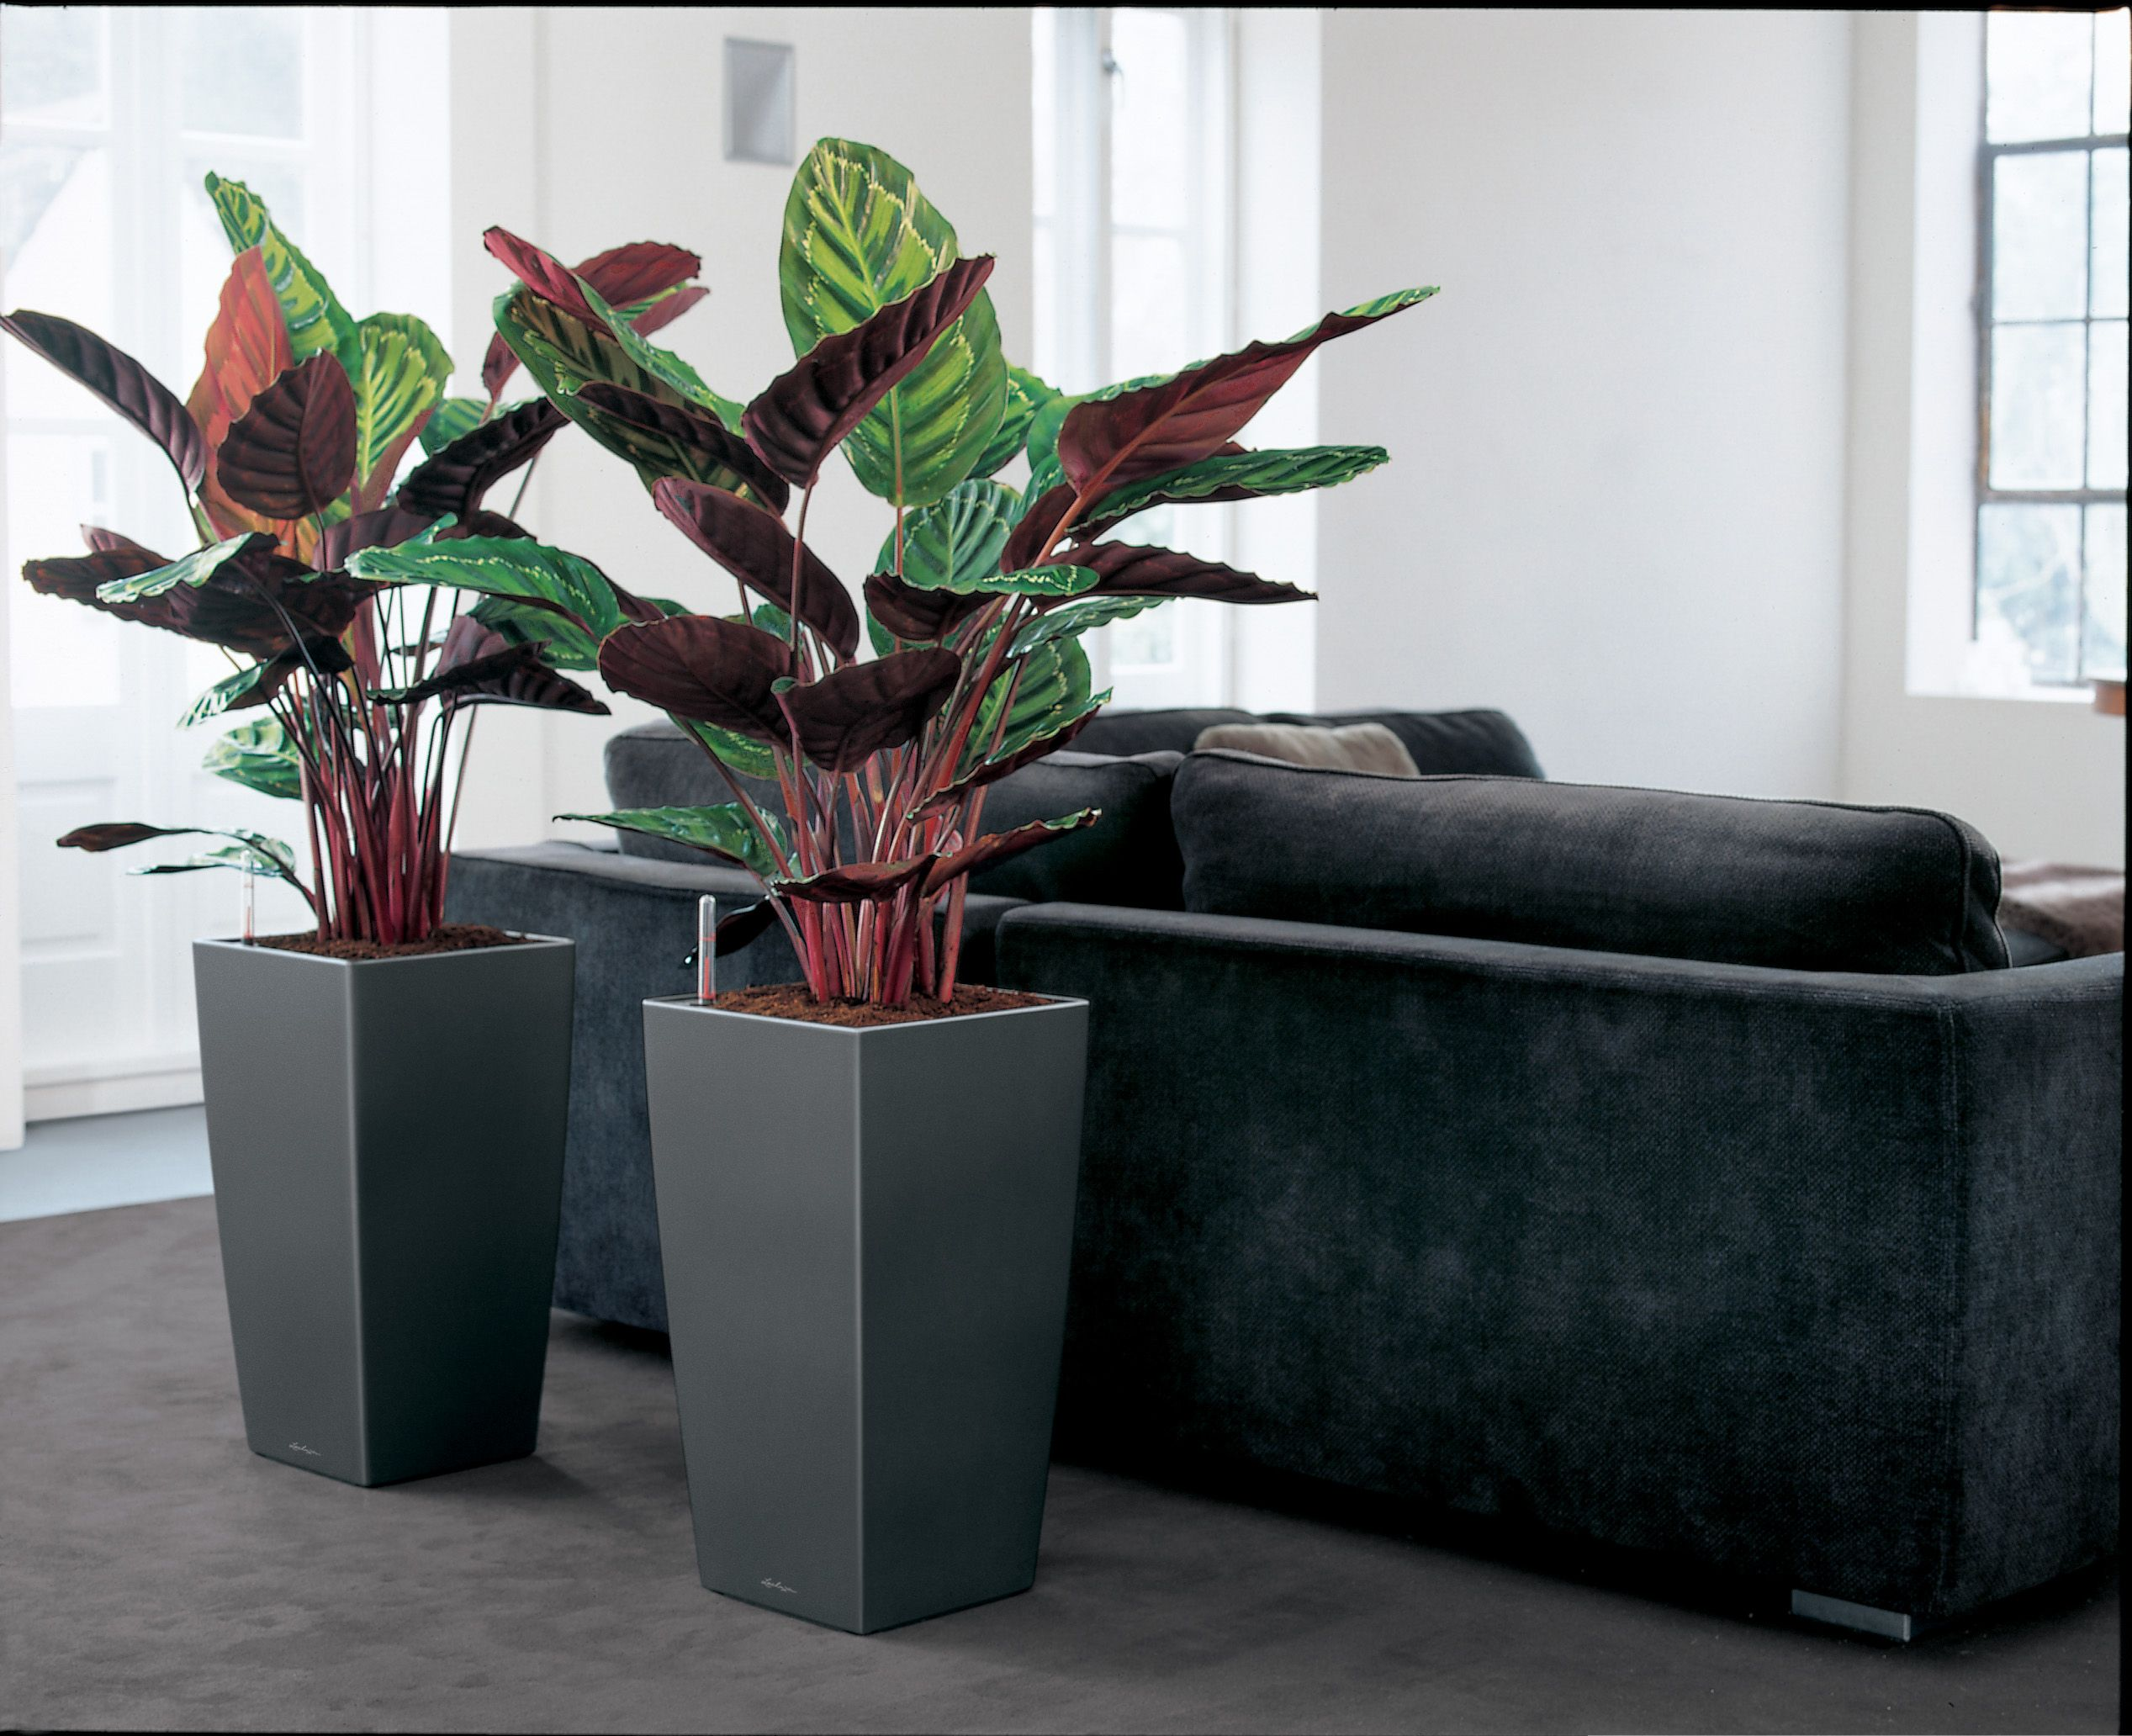 un calathea dans un pot lechuza plantes vertes xxl. Black Bedroom Furniture Sets. Home Design Ideas